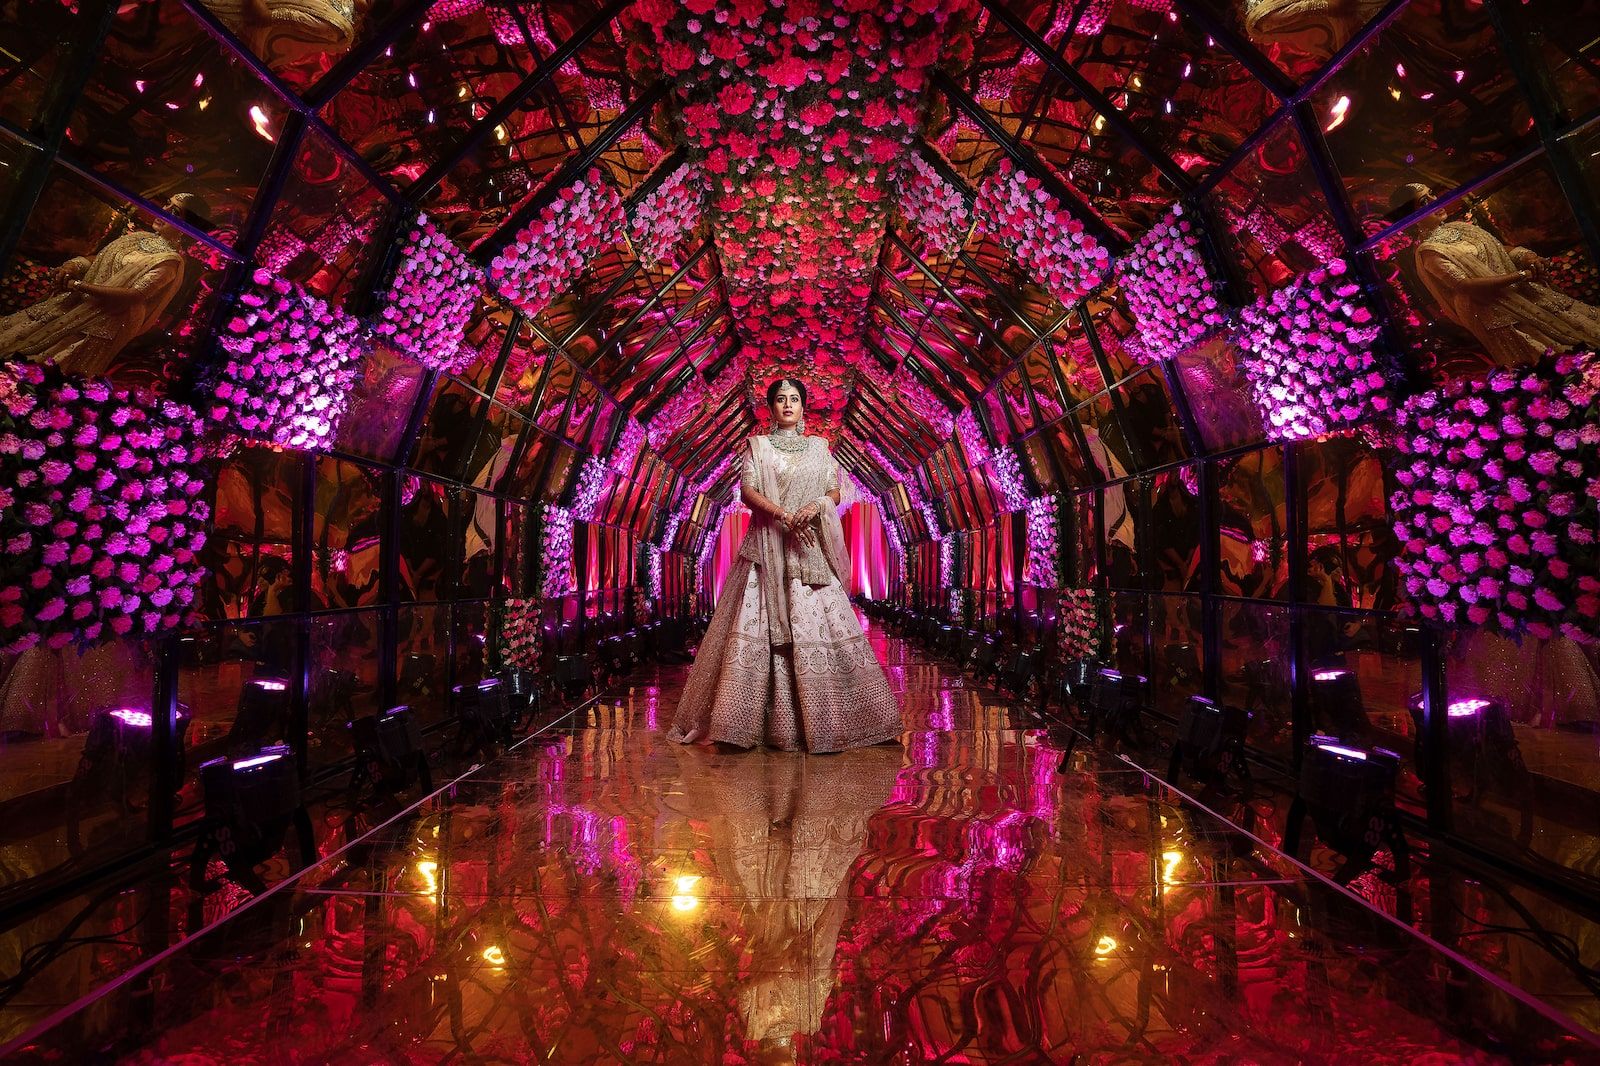 woman standing in middle of glass corridor filled with flowers alpha 9